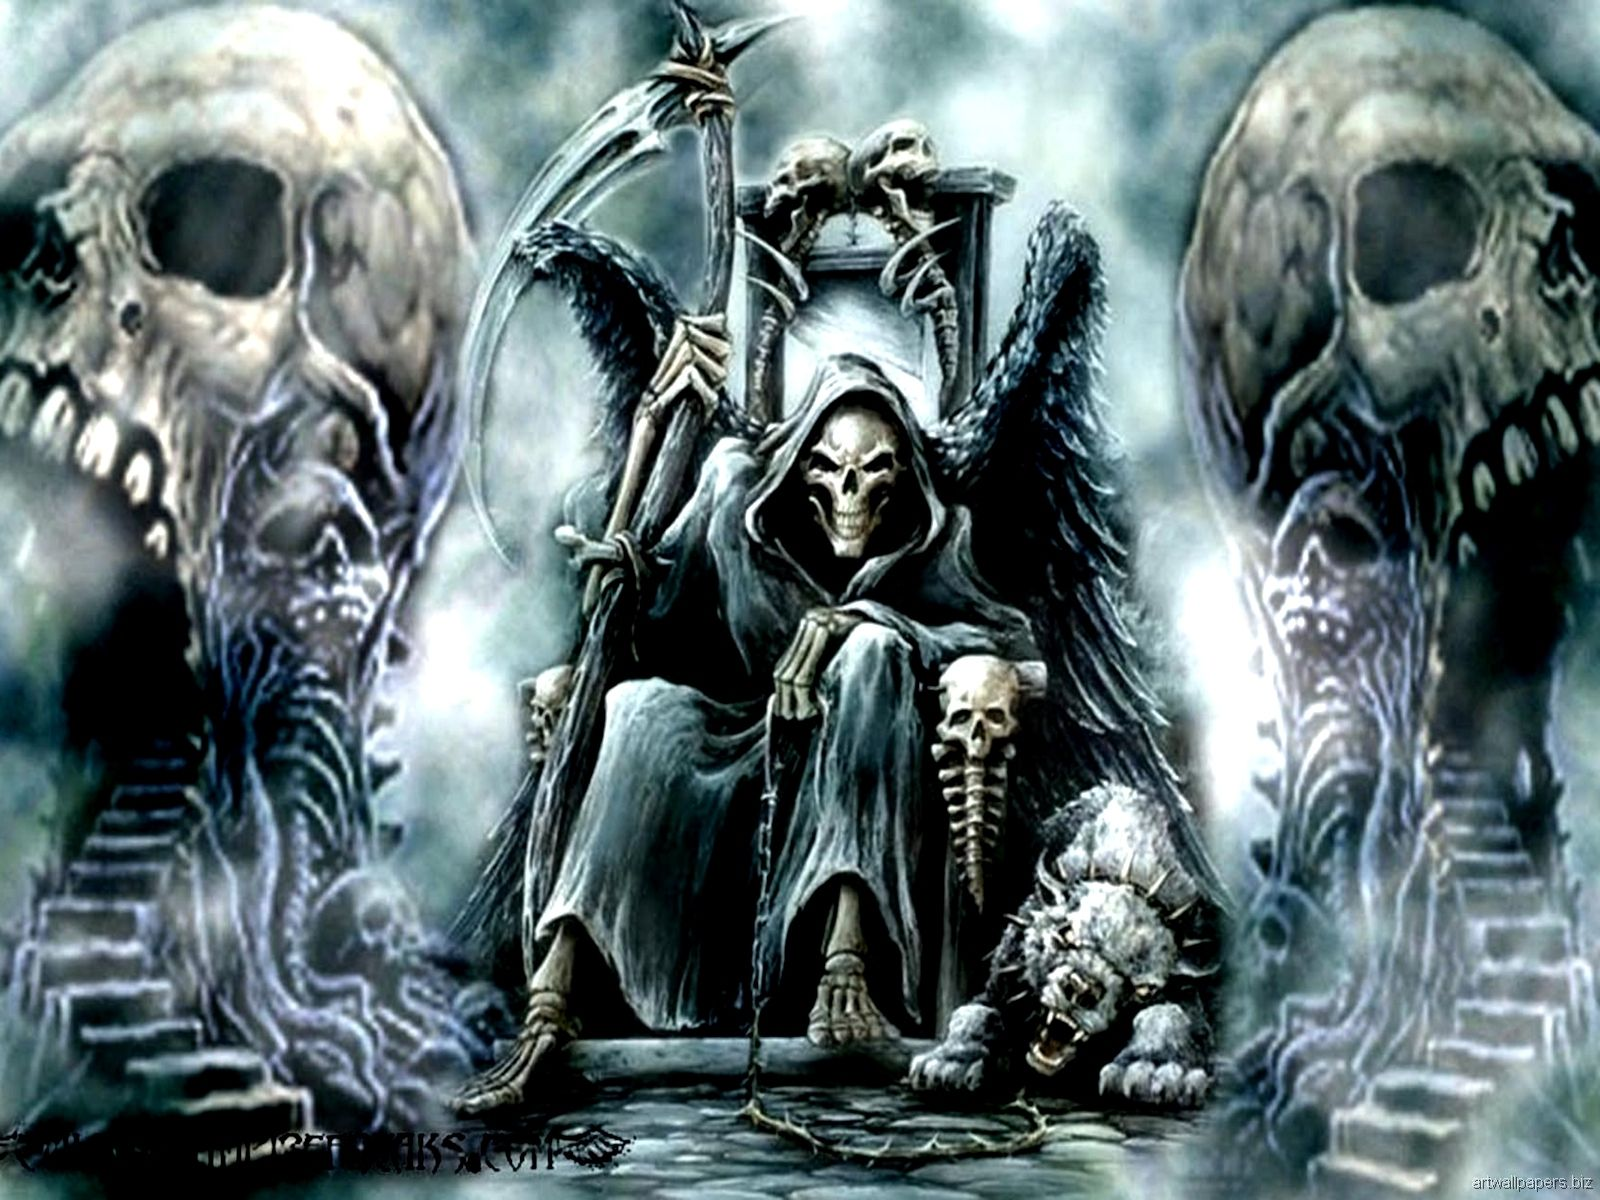 Awesome skulls n stuff images awesome skull wallpaper and hd awesome skulls n stuff images awesome skull wallpaper and voltagebd Image collections